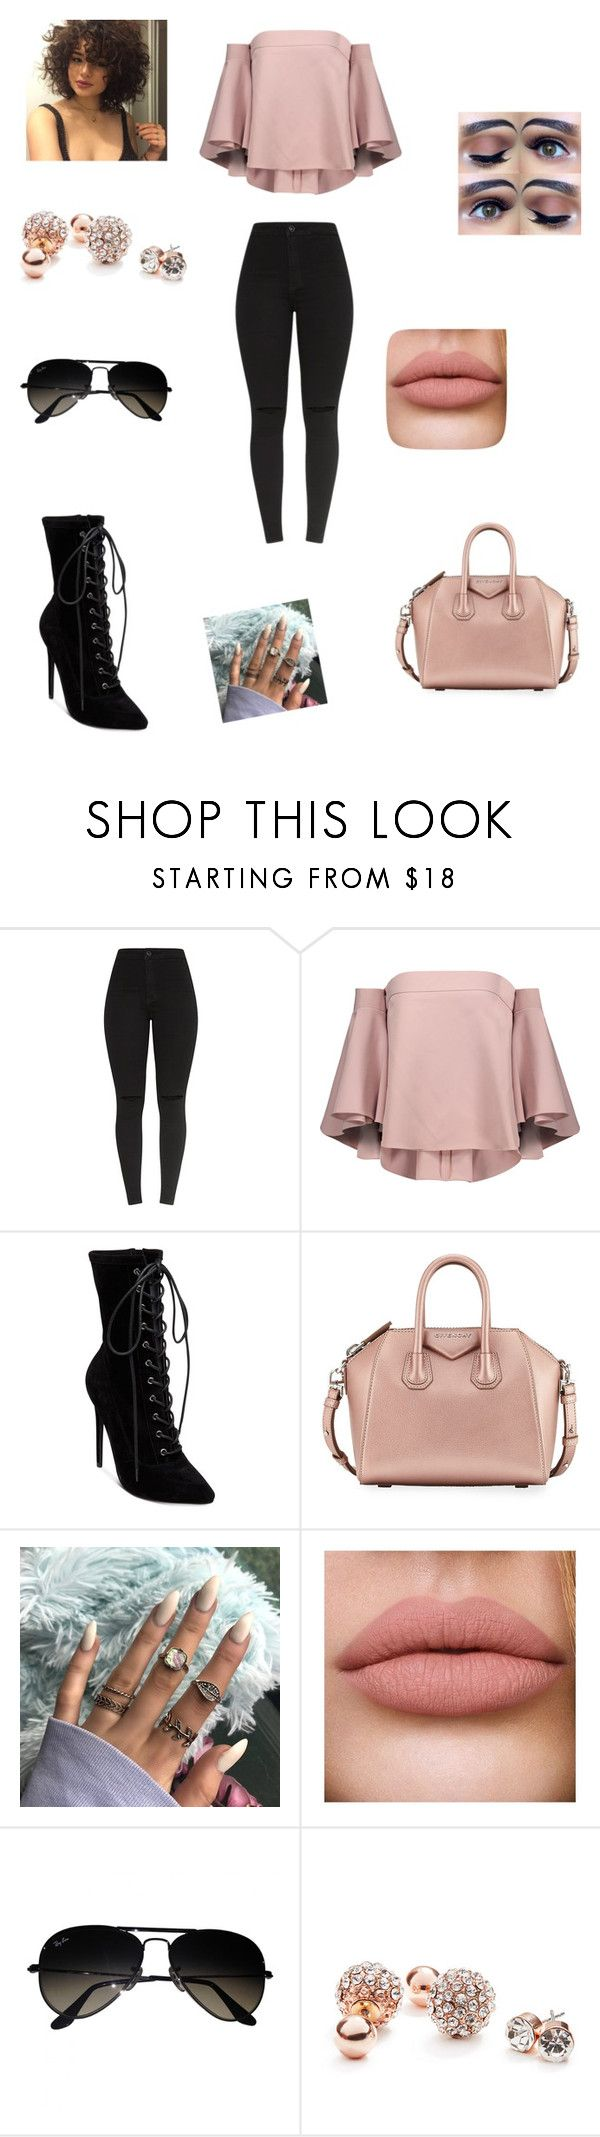 """Outfit #310"" by anadina ❤ liked on Polyvore featuring Milly, Steve Madden, Givenchy, Ray-Ban and GUESS"